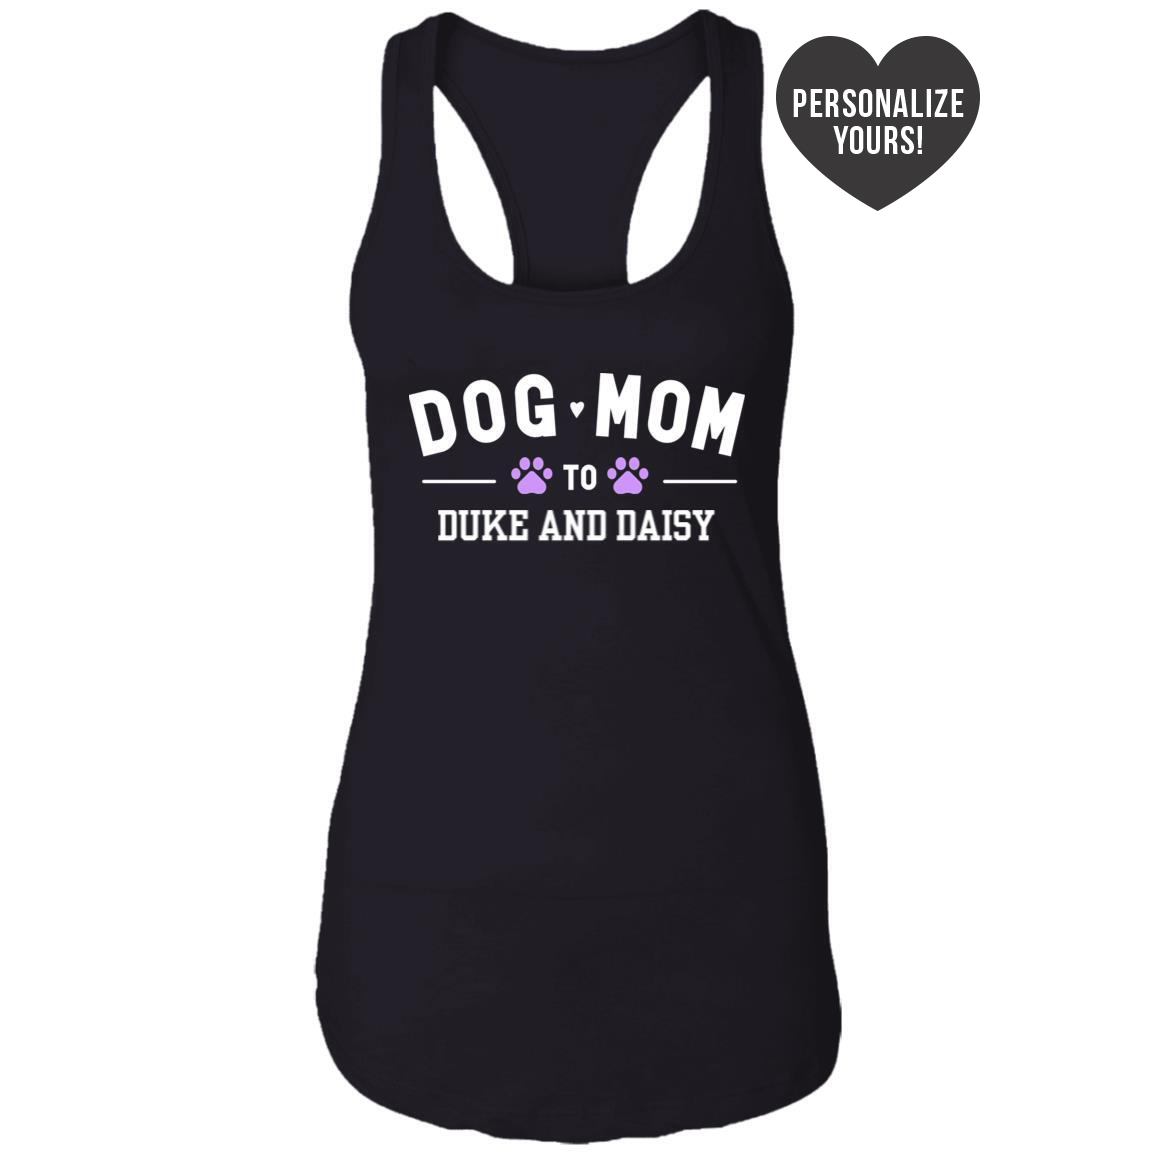 Dog Mom To My Fur Babies 💕 Personalized Ideal Tank- Black 🐾 Deal 40% Off